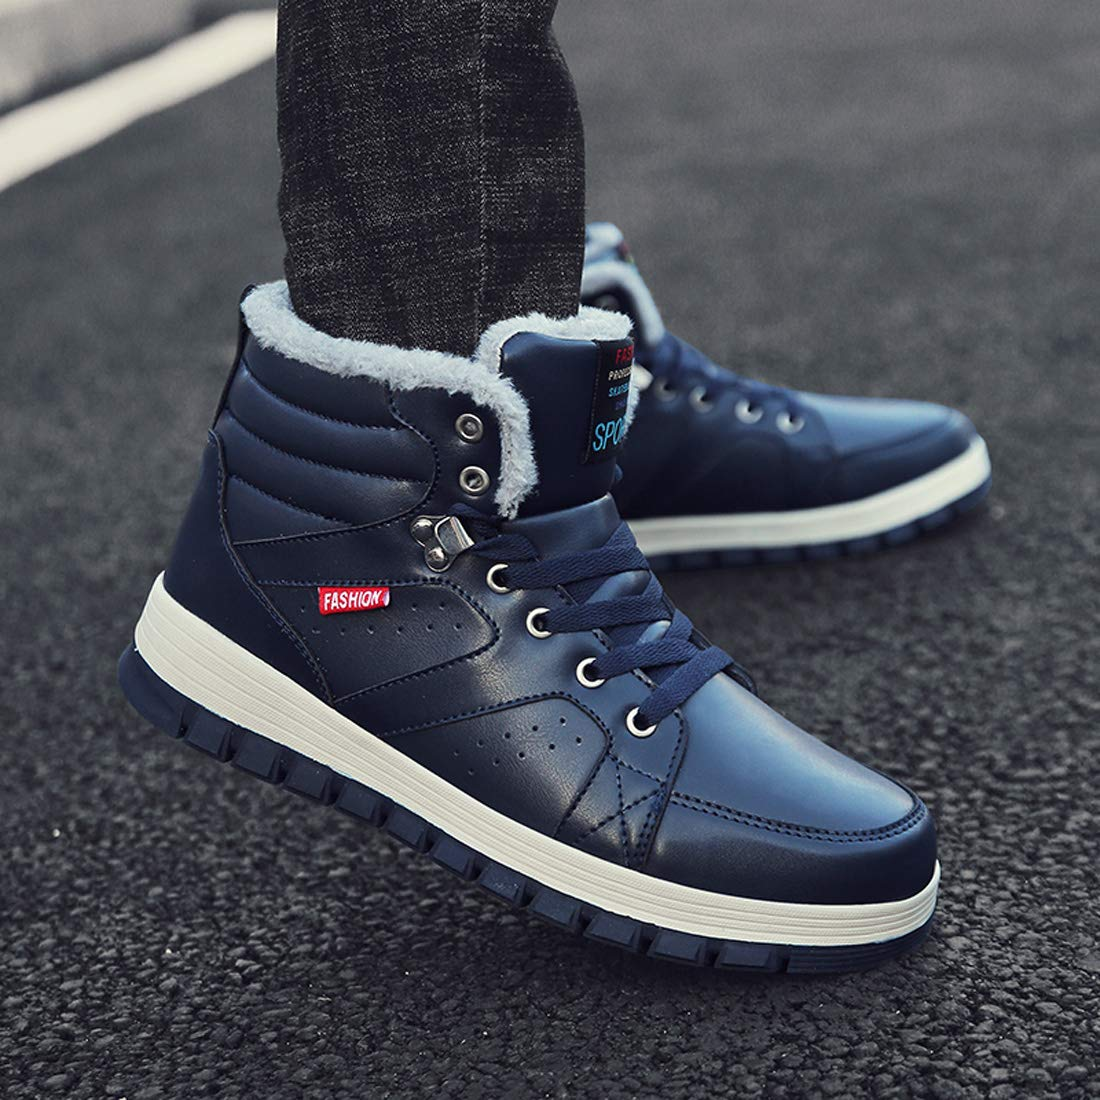 Ceyue Mens Leather Snow Boots Lace up Ankle Sneakers High Top Winter Warm Walking Shoes with Fur Lining(Blue 43) by Ceyue (Image #6)